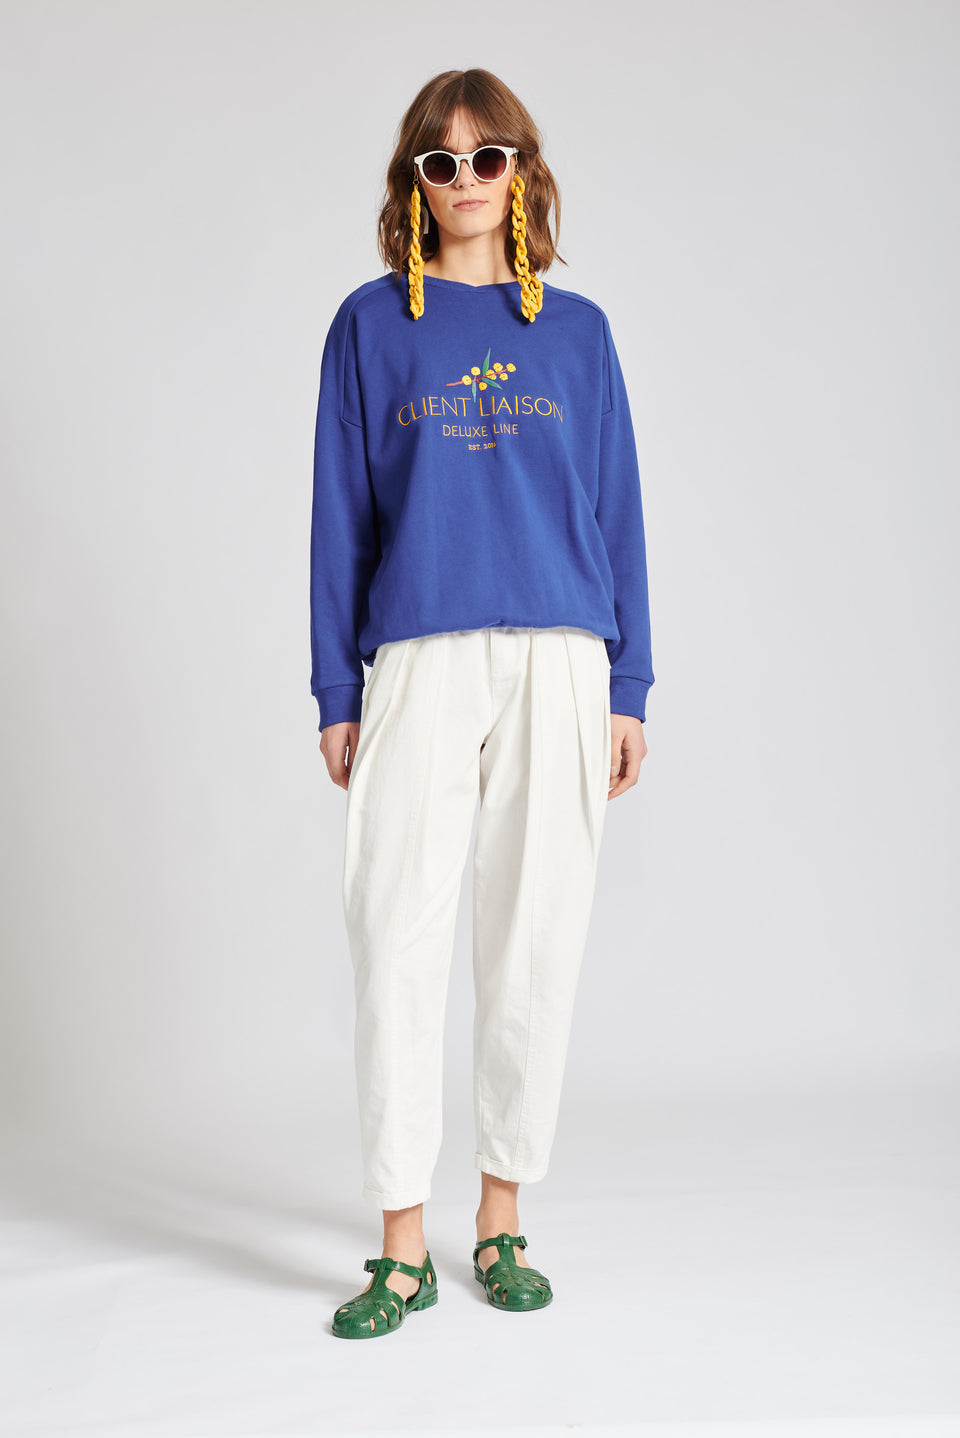 Wattle Deluxe Classic Sweat (CLDL-039)